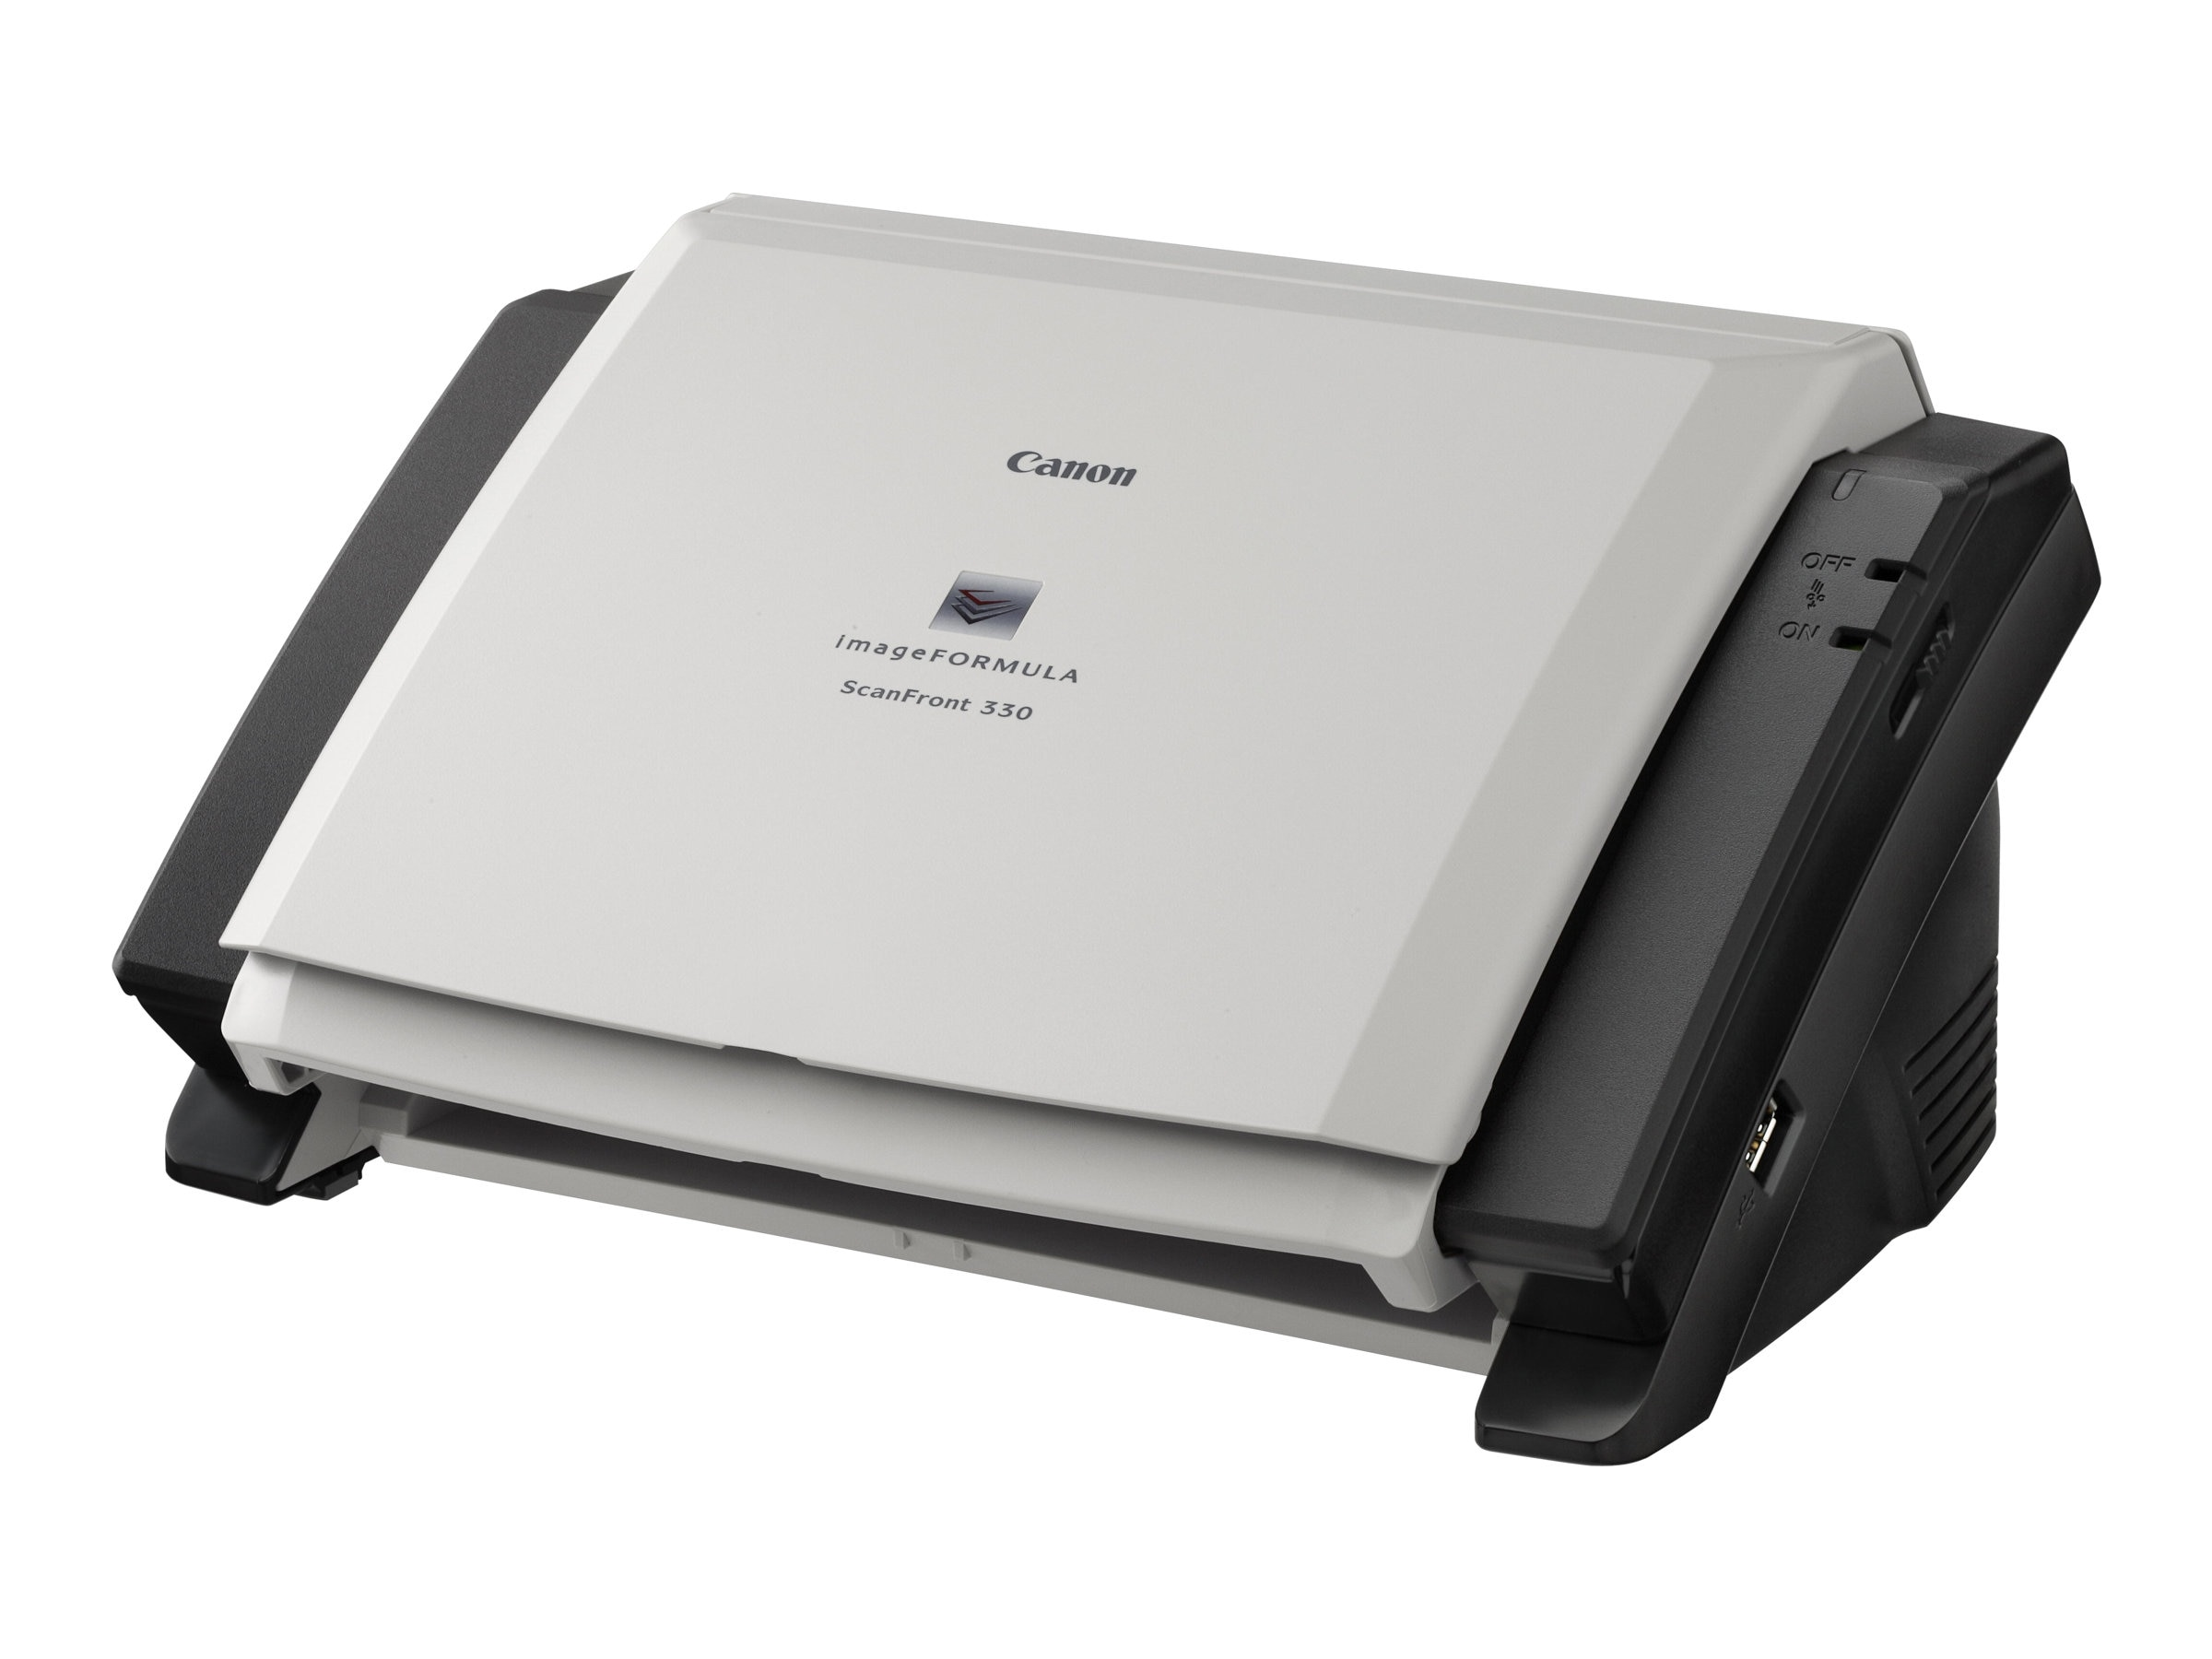 Open Box Canon imageFORMULA ScanFront 330 Sheetfed 24-bit Color 600dpi USB Network Scanner, 8683B002